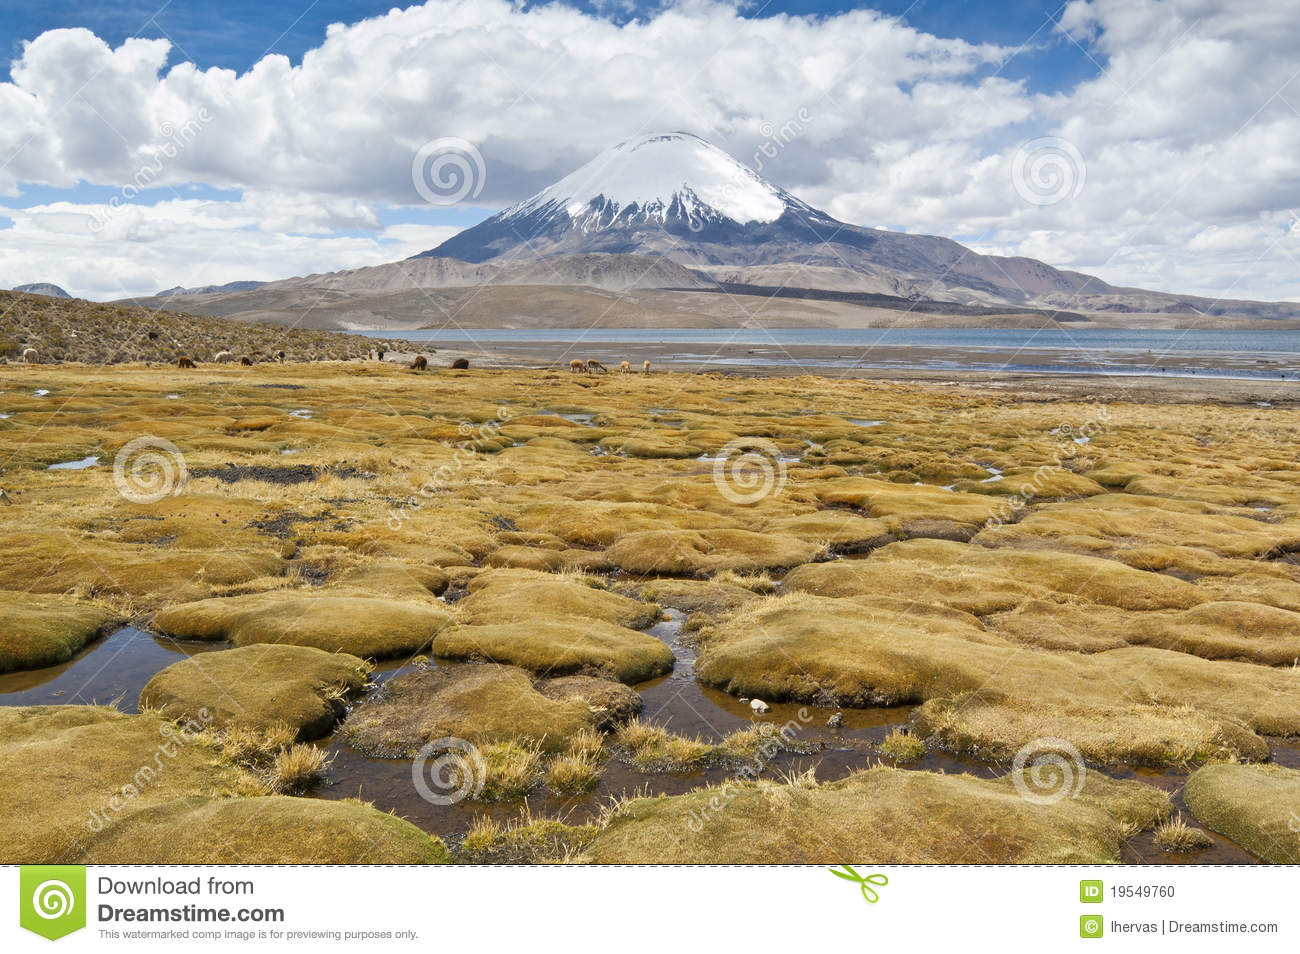 how to get to lauca national park